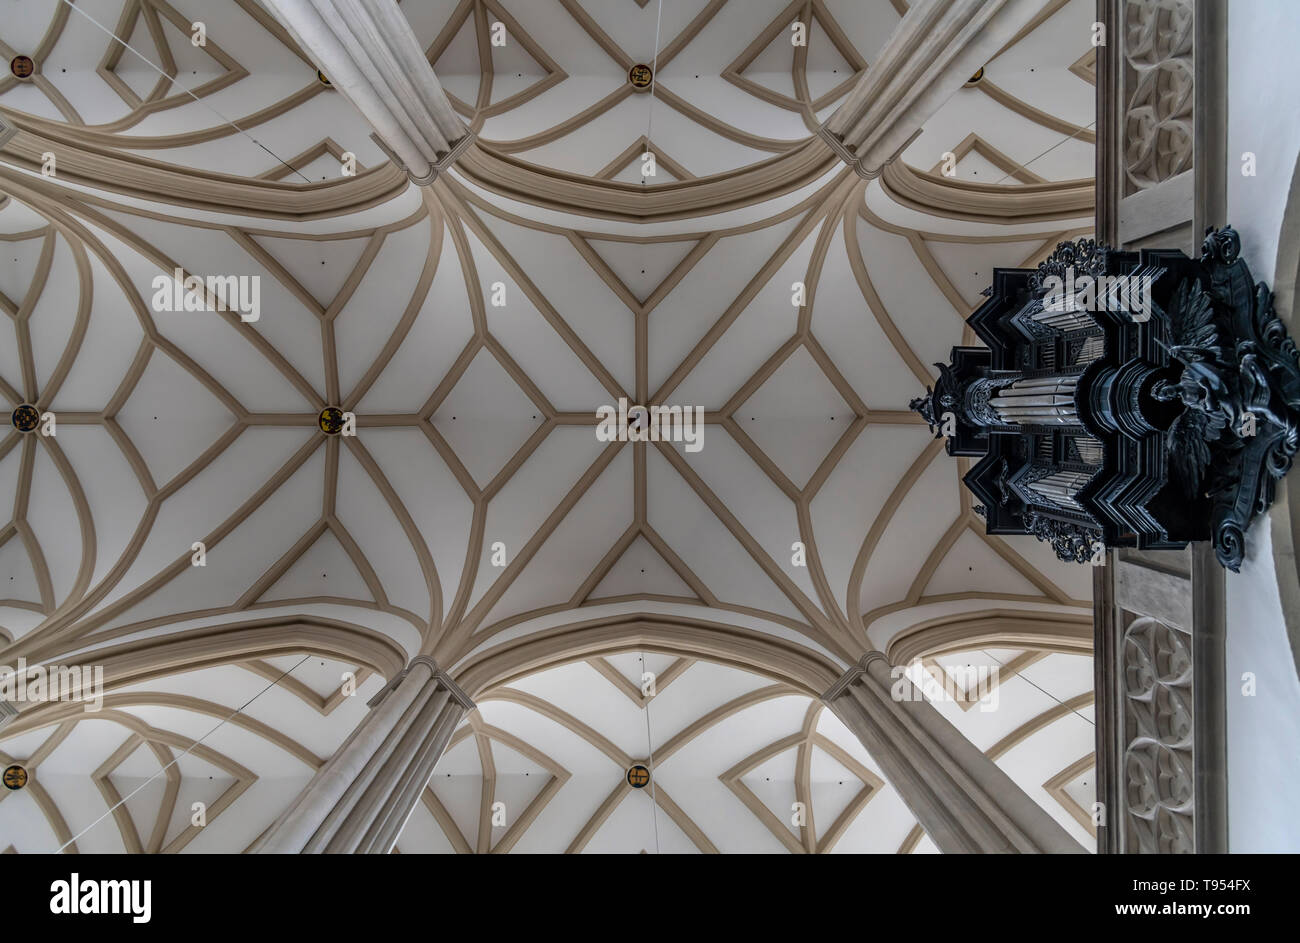 The ceiling of St. James' Church, Brno in the Czech Republic. Dating back to the 13th century. Famous for the ossuary beneath the chuch. Stock Photo